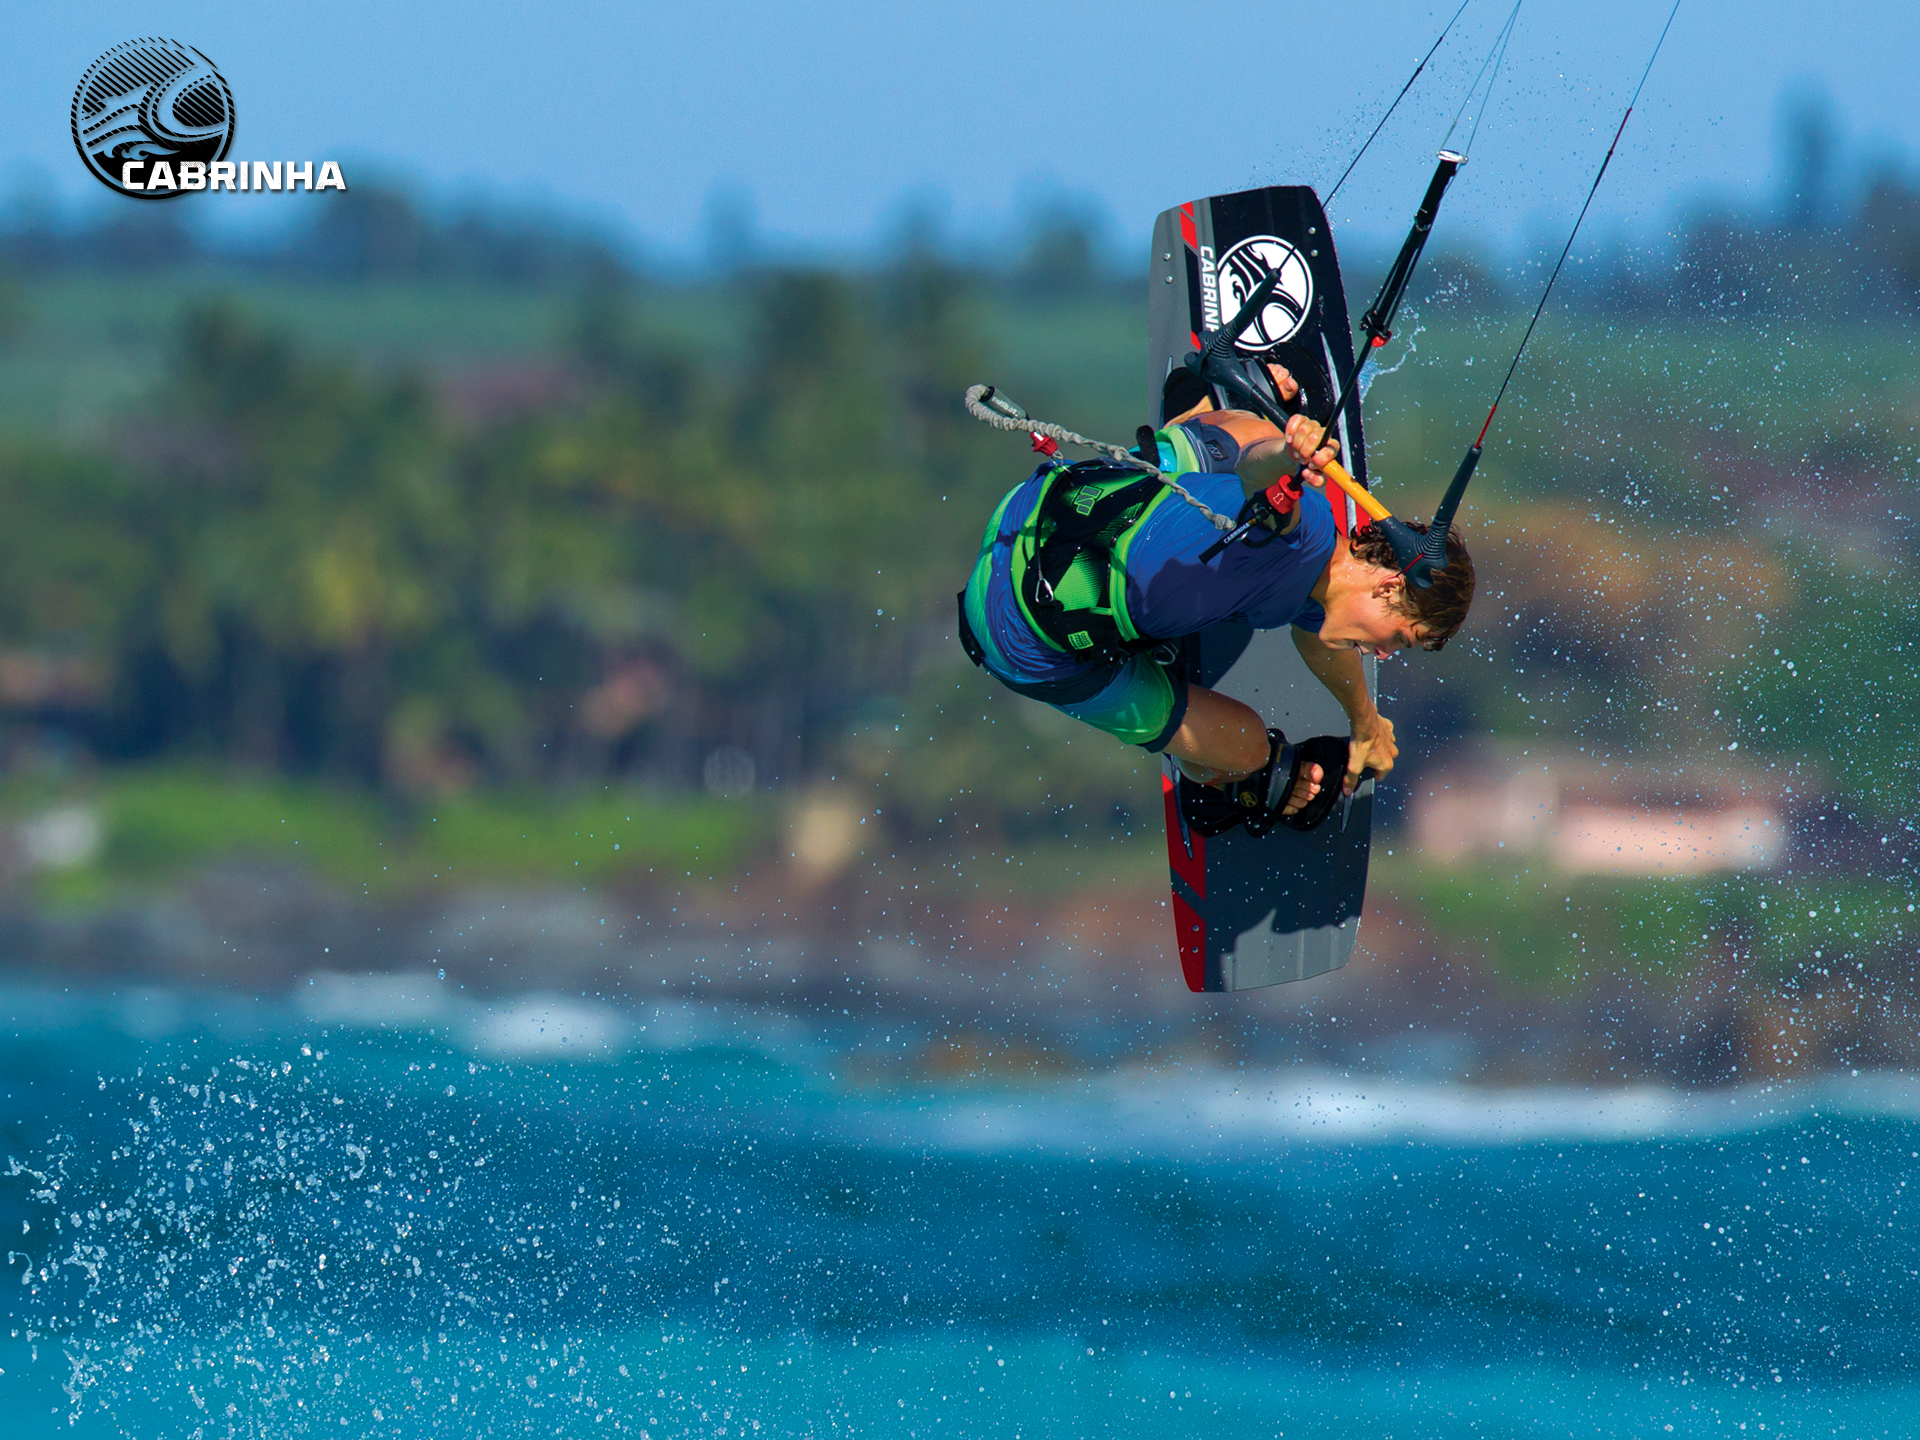 kitesurf wallpaper image - Liam Whaley on the 2015 Cabrinha Ace twintip with a nice board grab. - in resolution: Standard 4:3 1920 X 1440